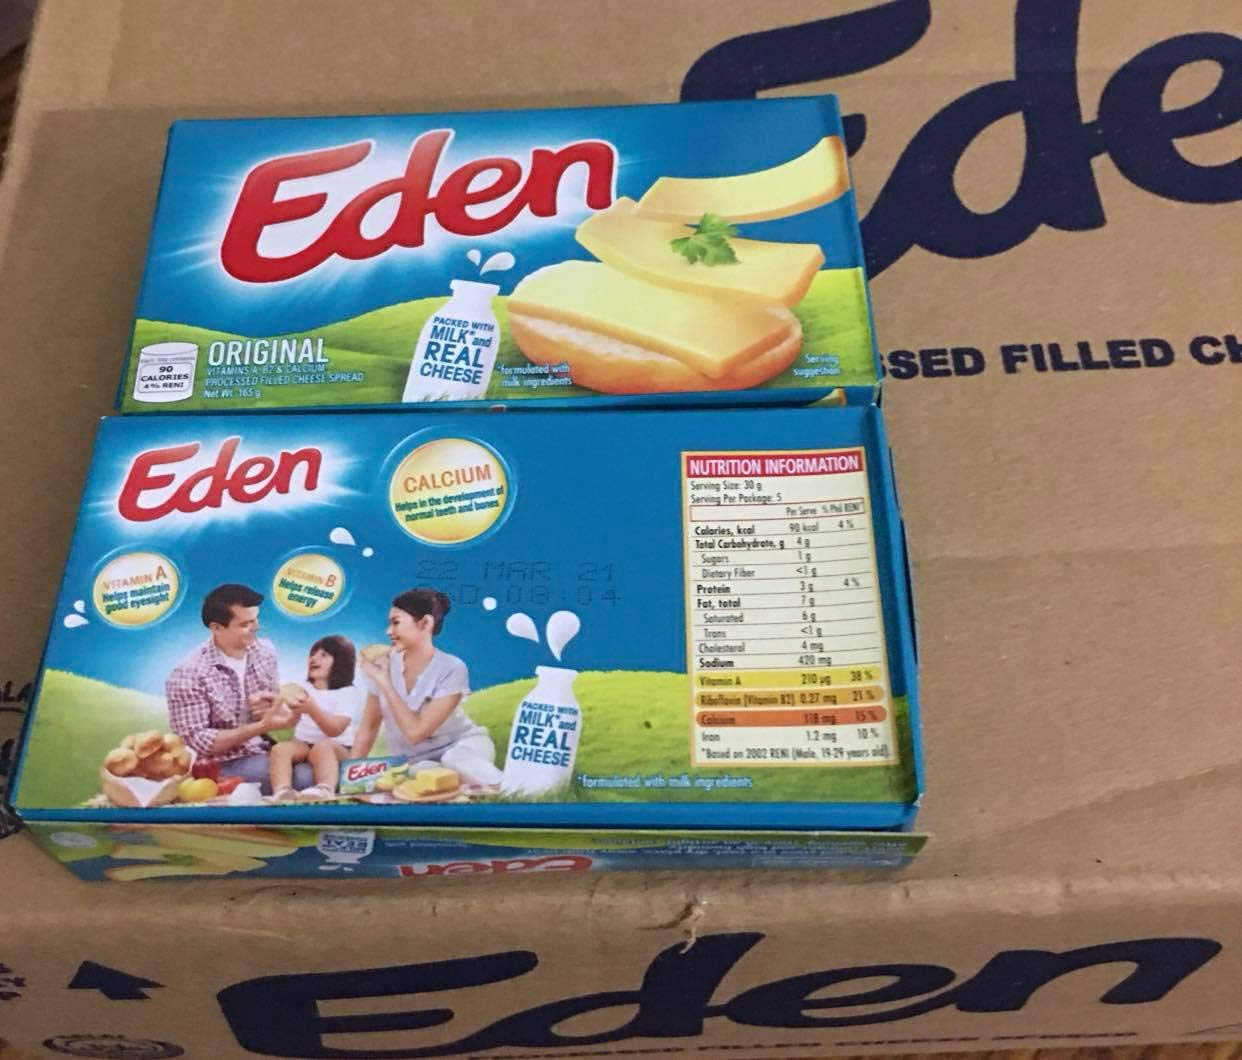 Eden Original Cheese (2 Pack, Total of 330g)